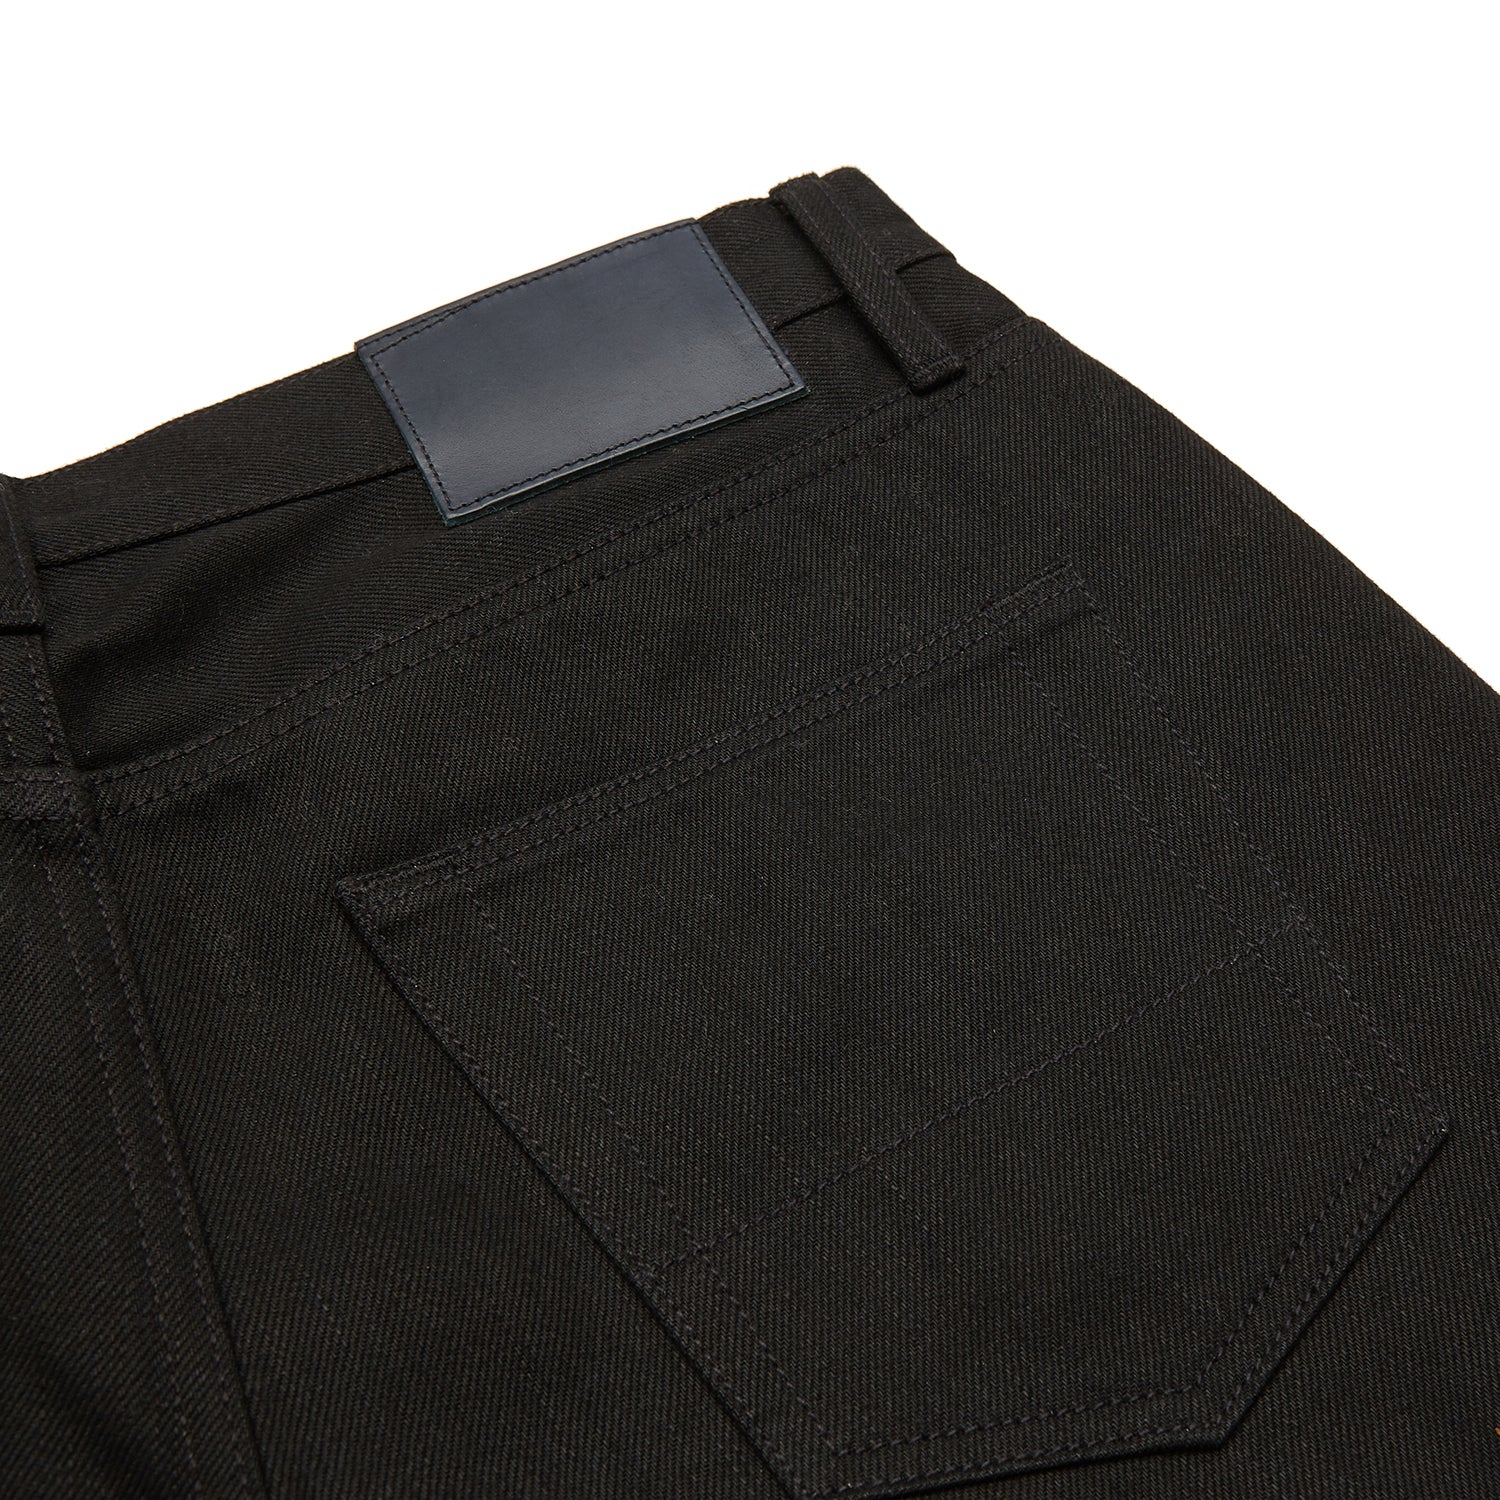 Black Italian Selvedge Denim Jeans